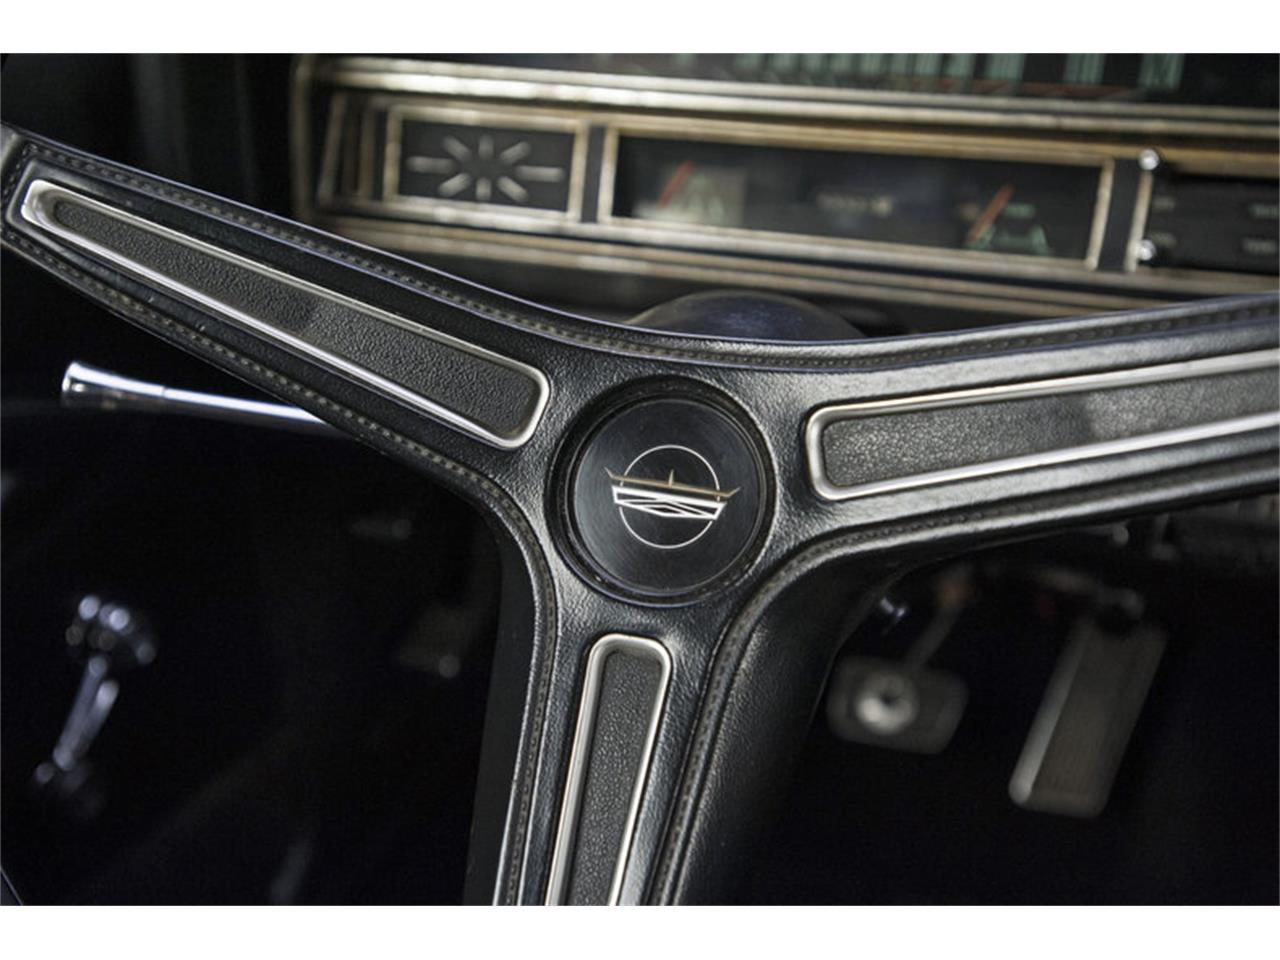 Large Picture of Classic '70 Ford Torino located in North Carolina - $429,900.00 - EWI3